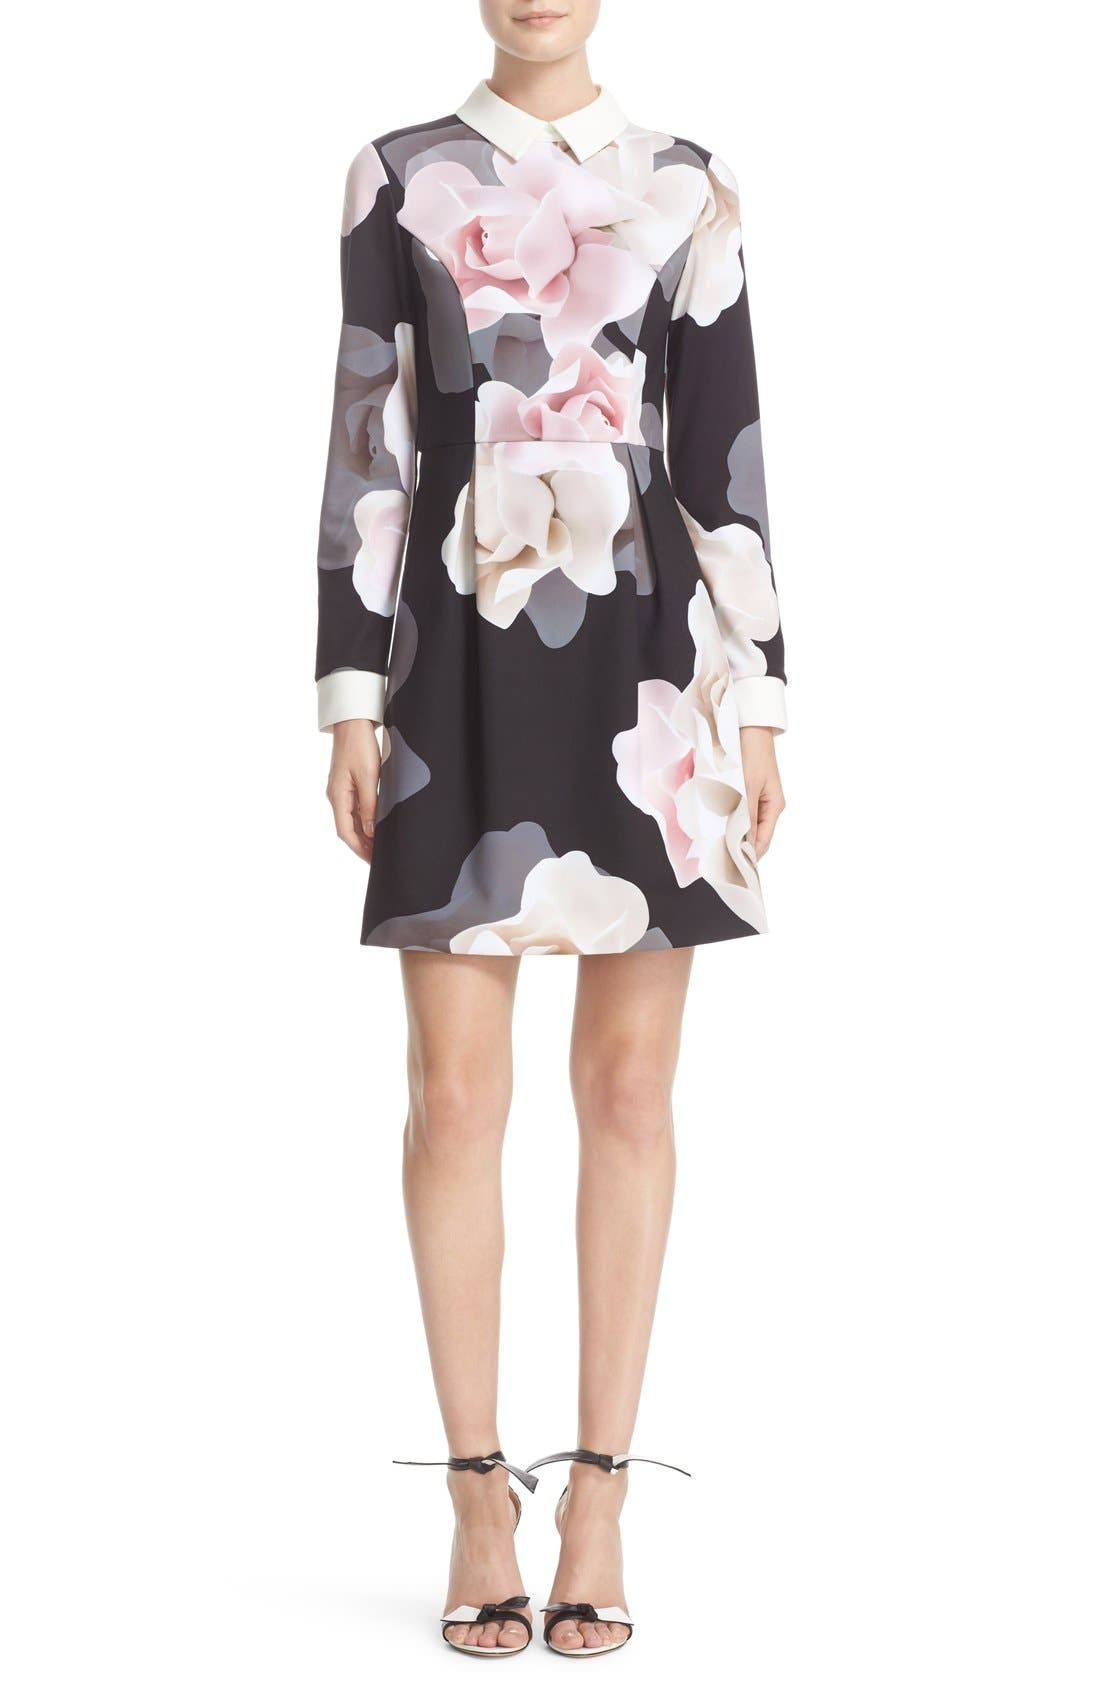 TED BAKER LONDON,                             Porcelain Rose Print Contrast Trim Fit & Flare Dress,                             Main thumbnail 1, color,                             001